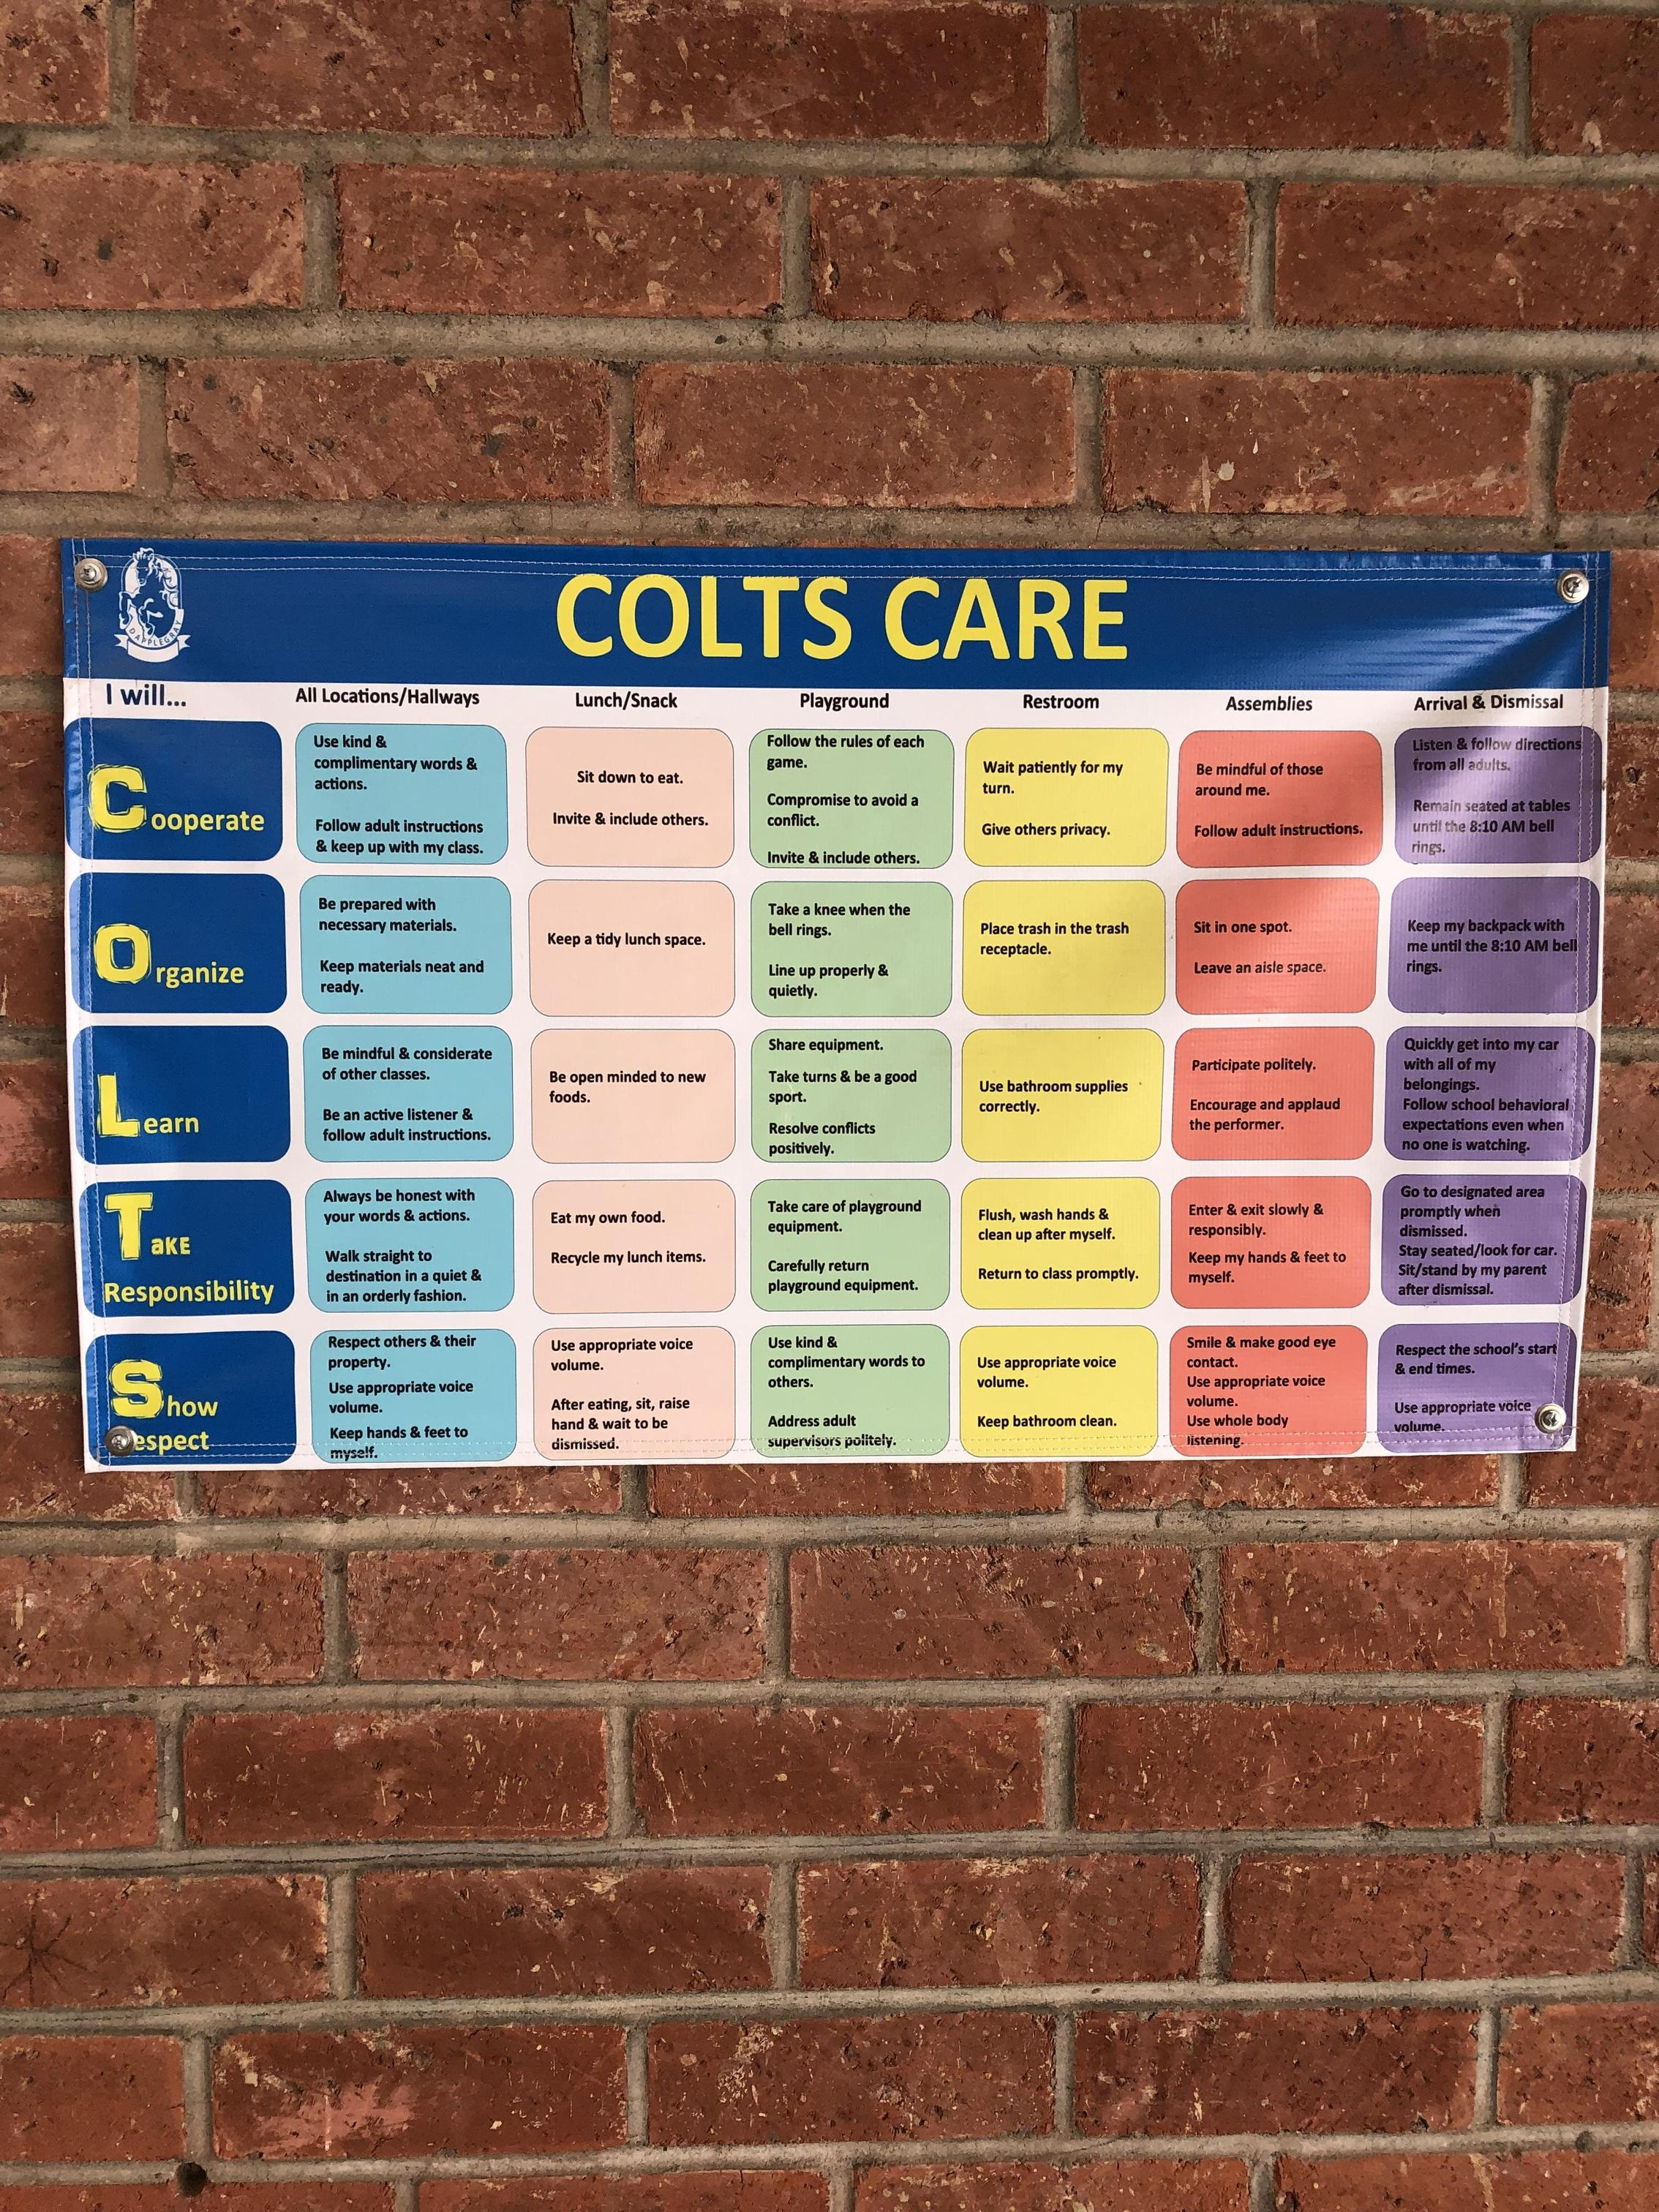 COLTS CARE